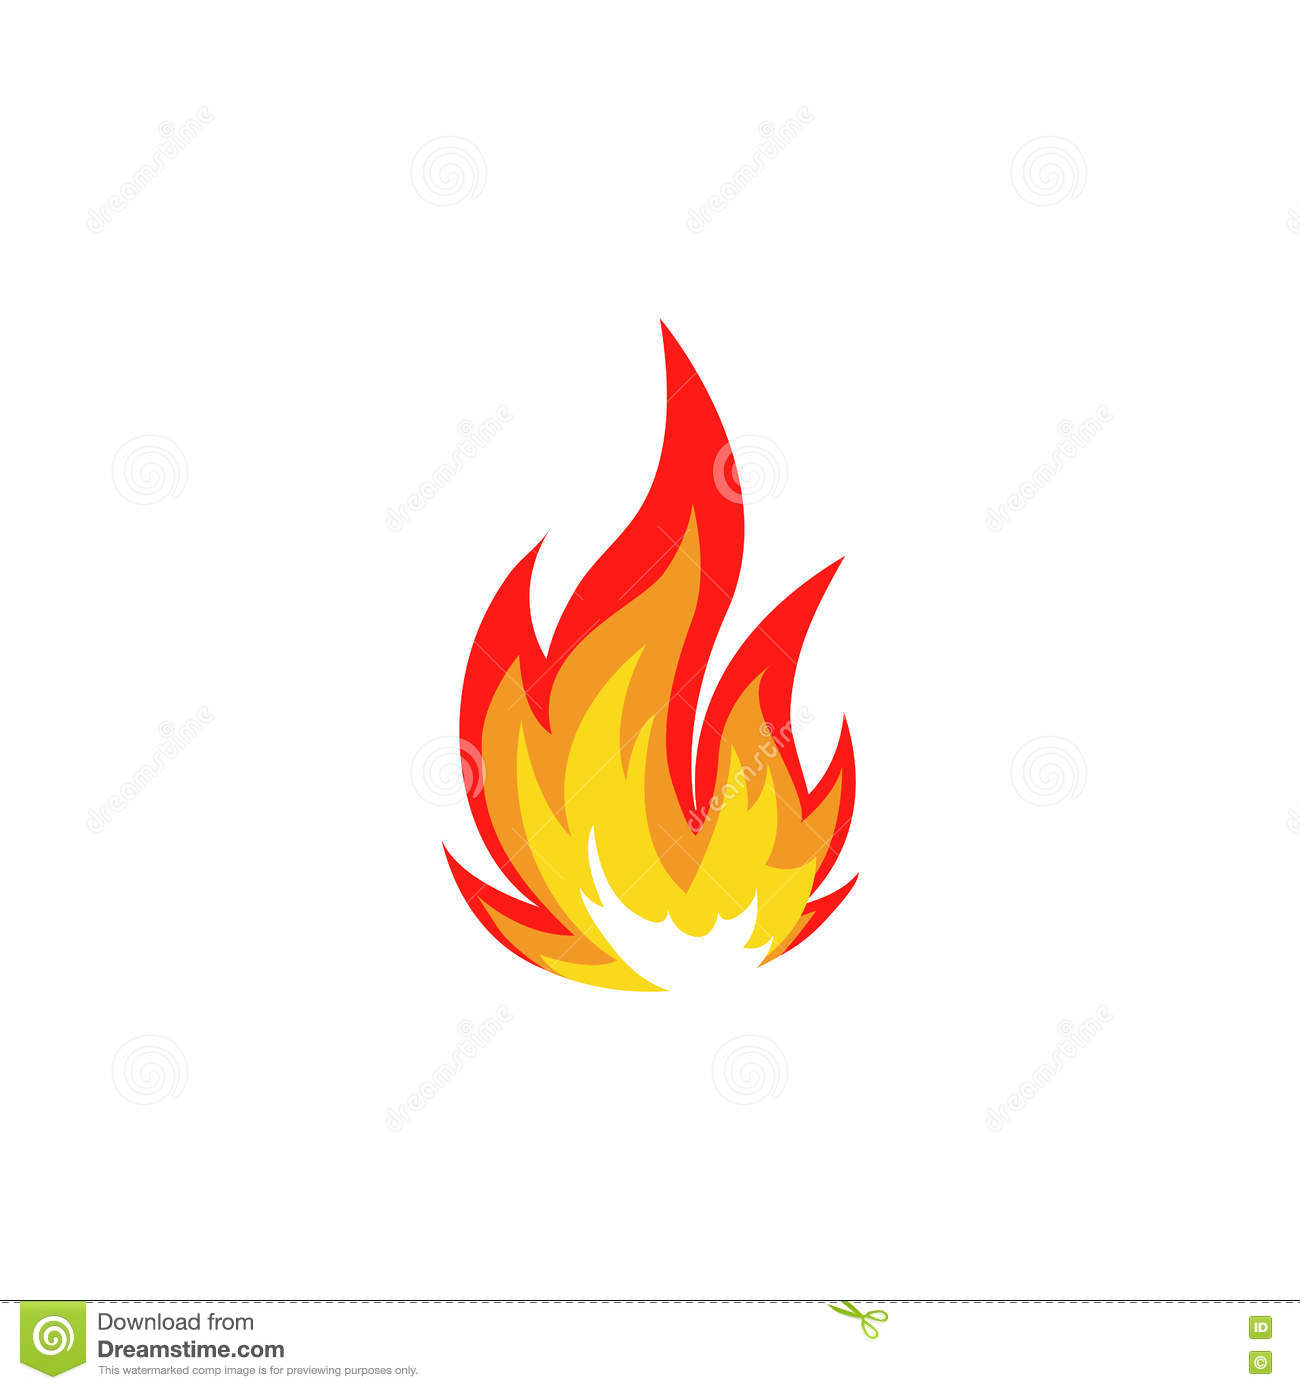 Flame logo fieldstation flame logo nvjuhfo Choice Image